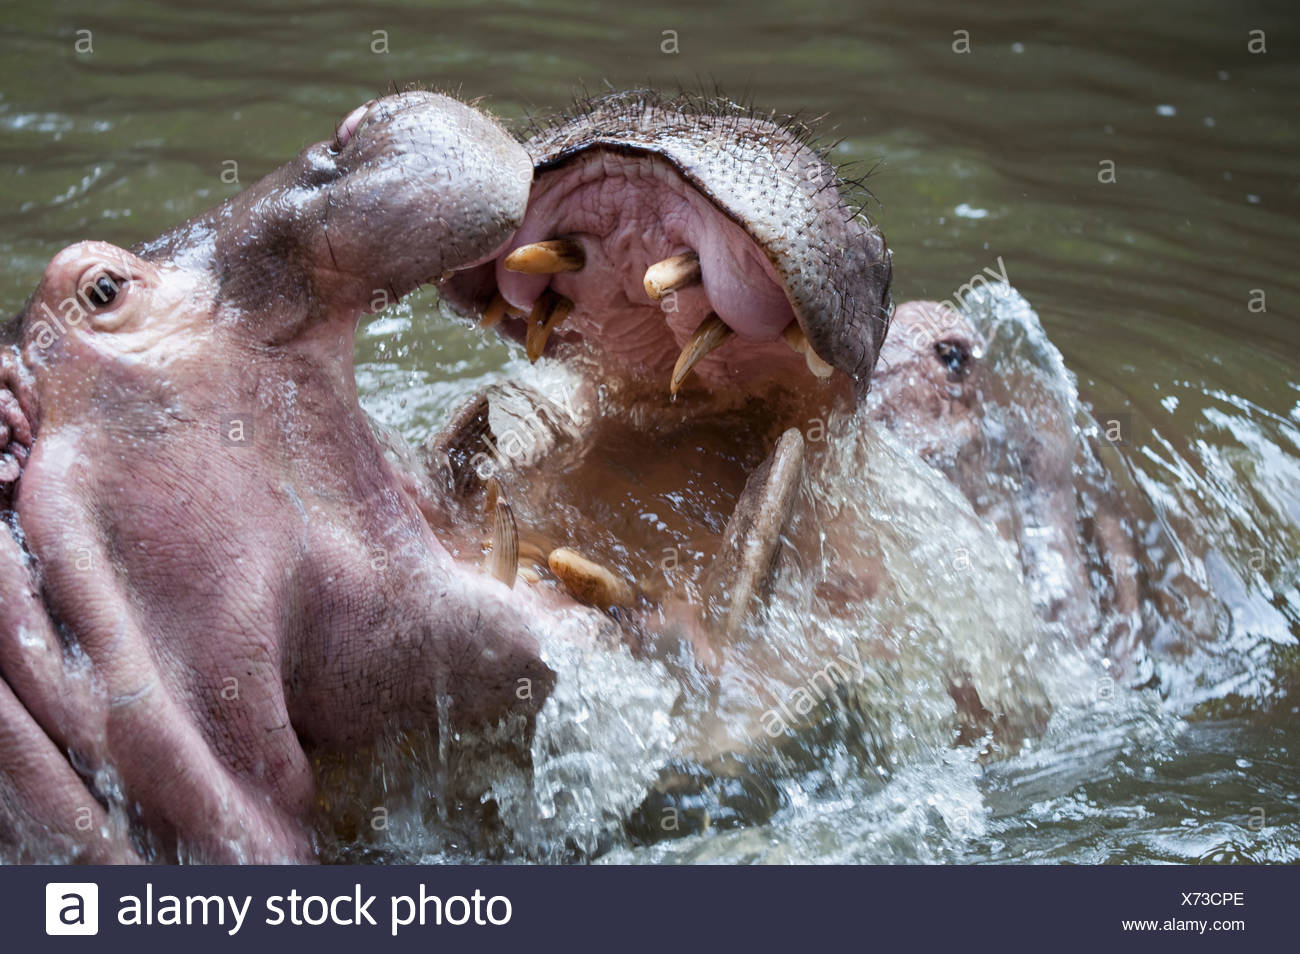 Two Hippos; Two Hippos Fighting In Water - Stock Image